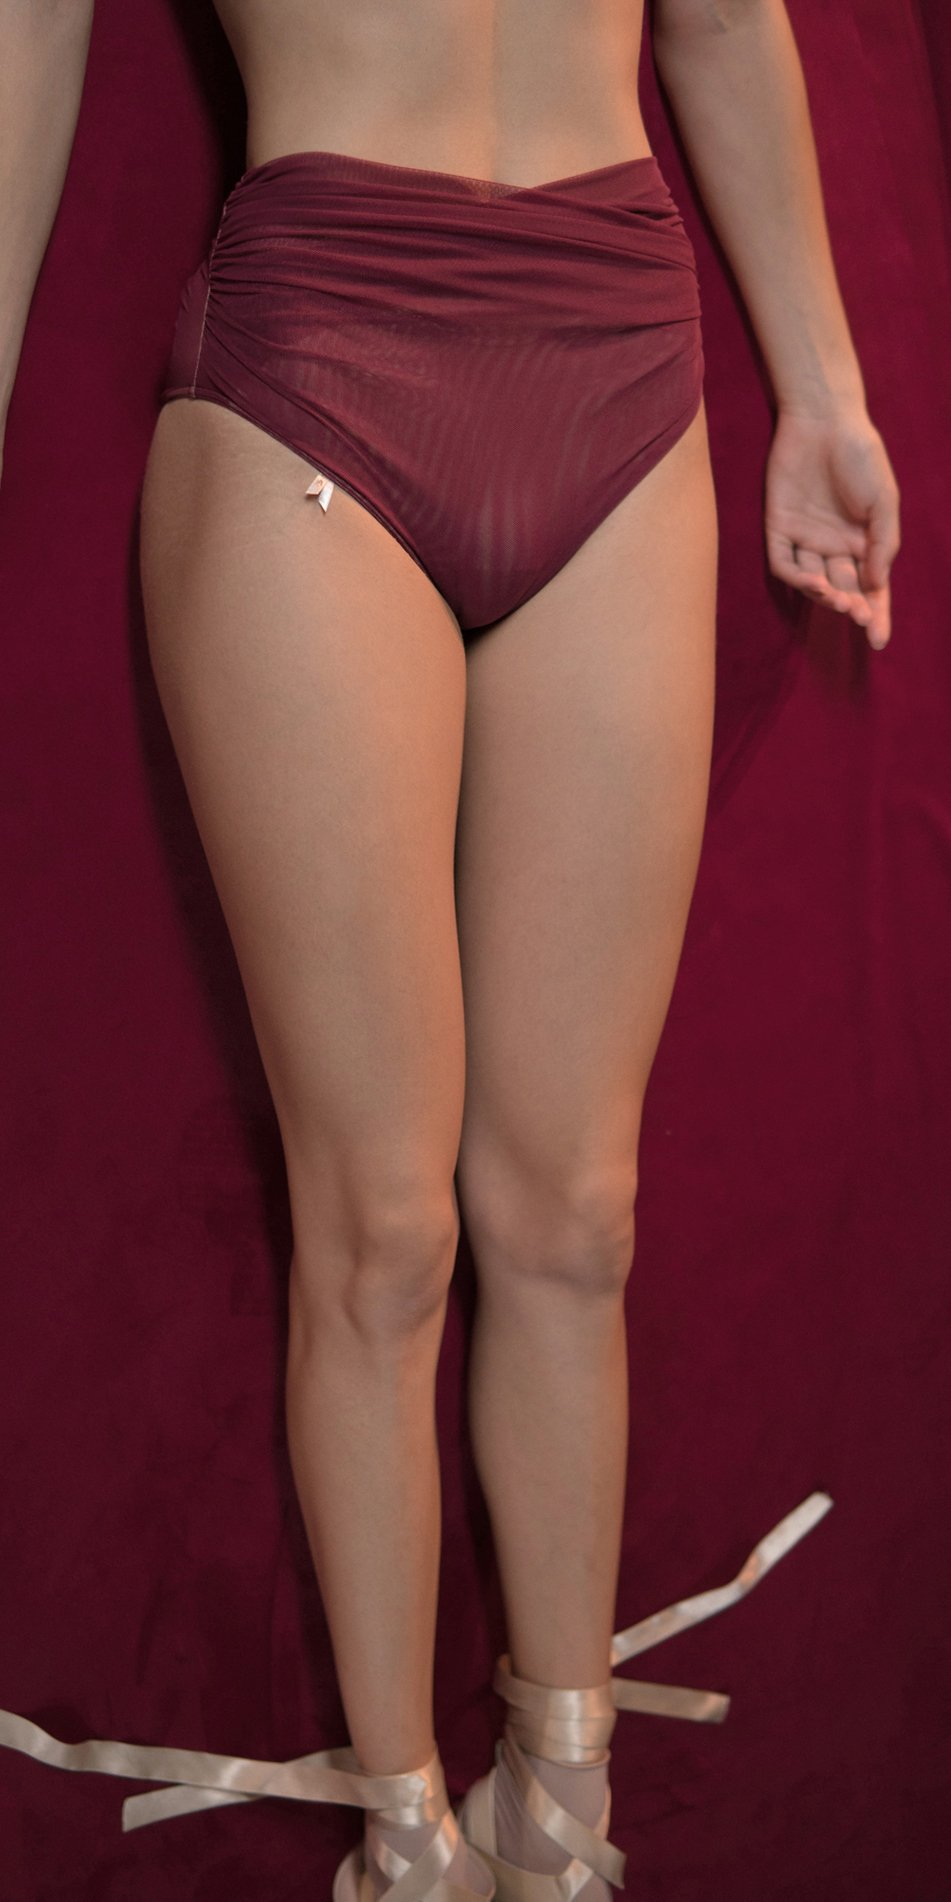 GRES red cache ceour panties 1